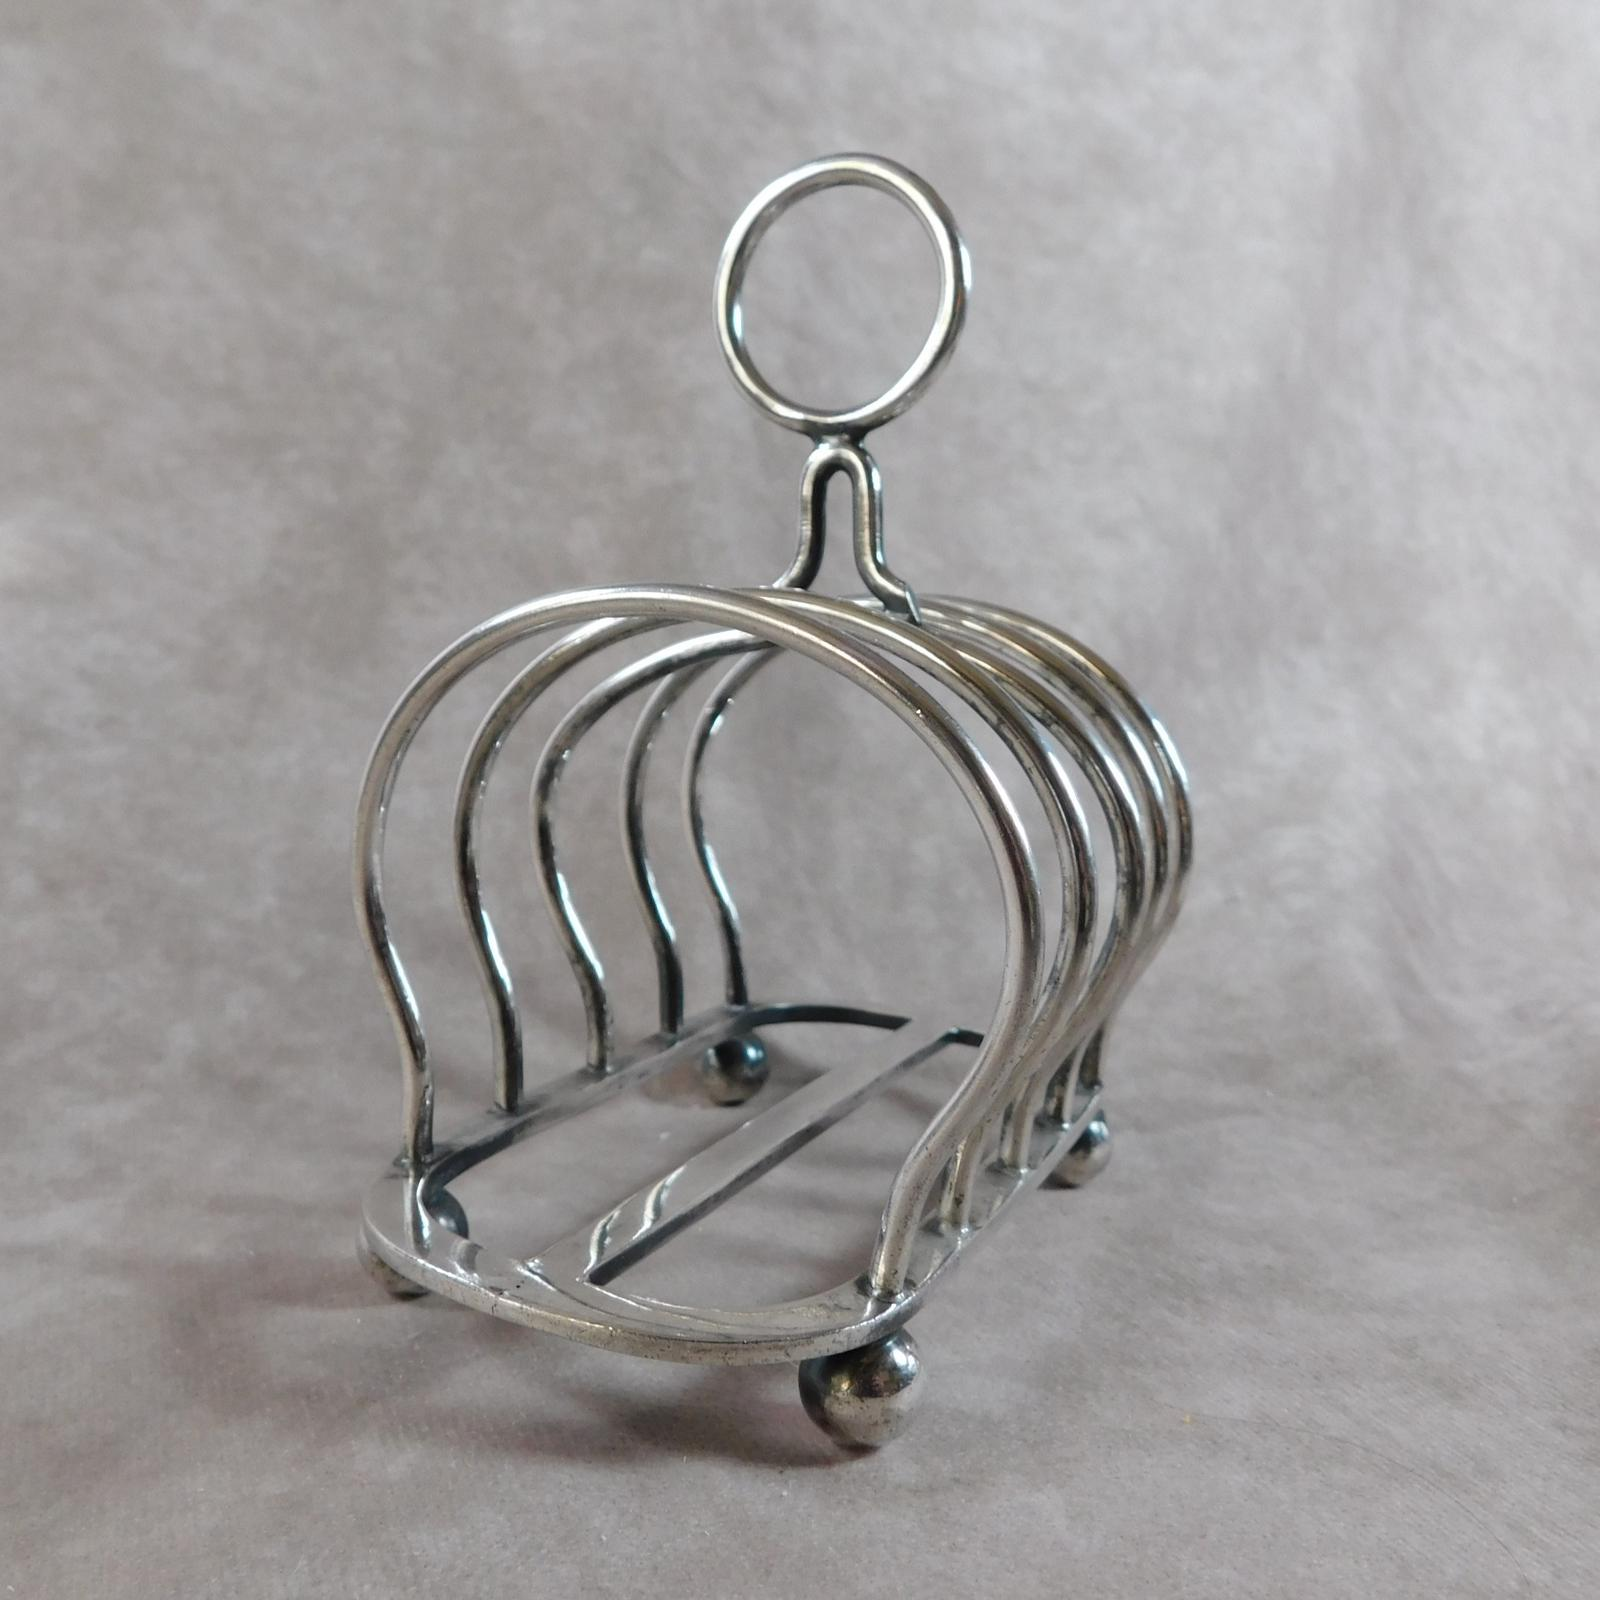 """Early 20th Century """"Welbeck Plate"""" Toast Rack by The Alexander Clark Co Ltd (1 of 1)"""